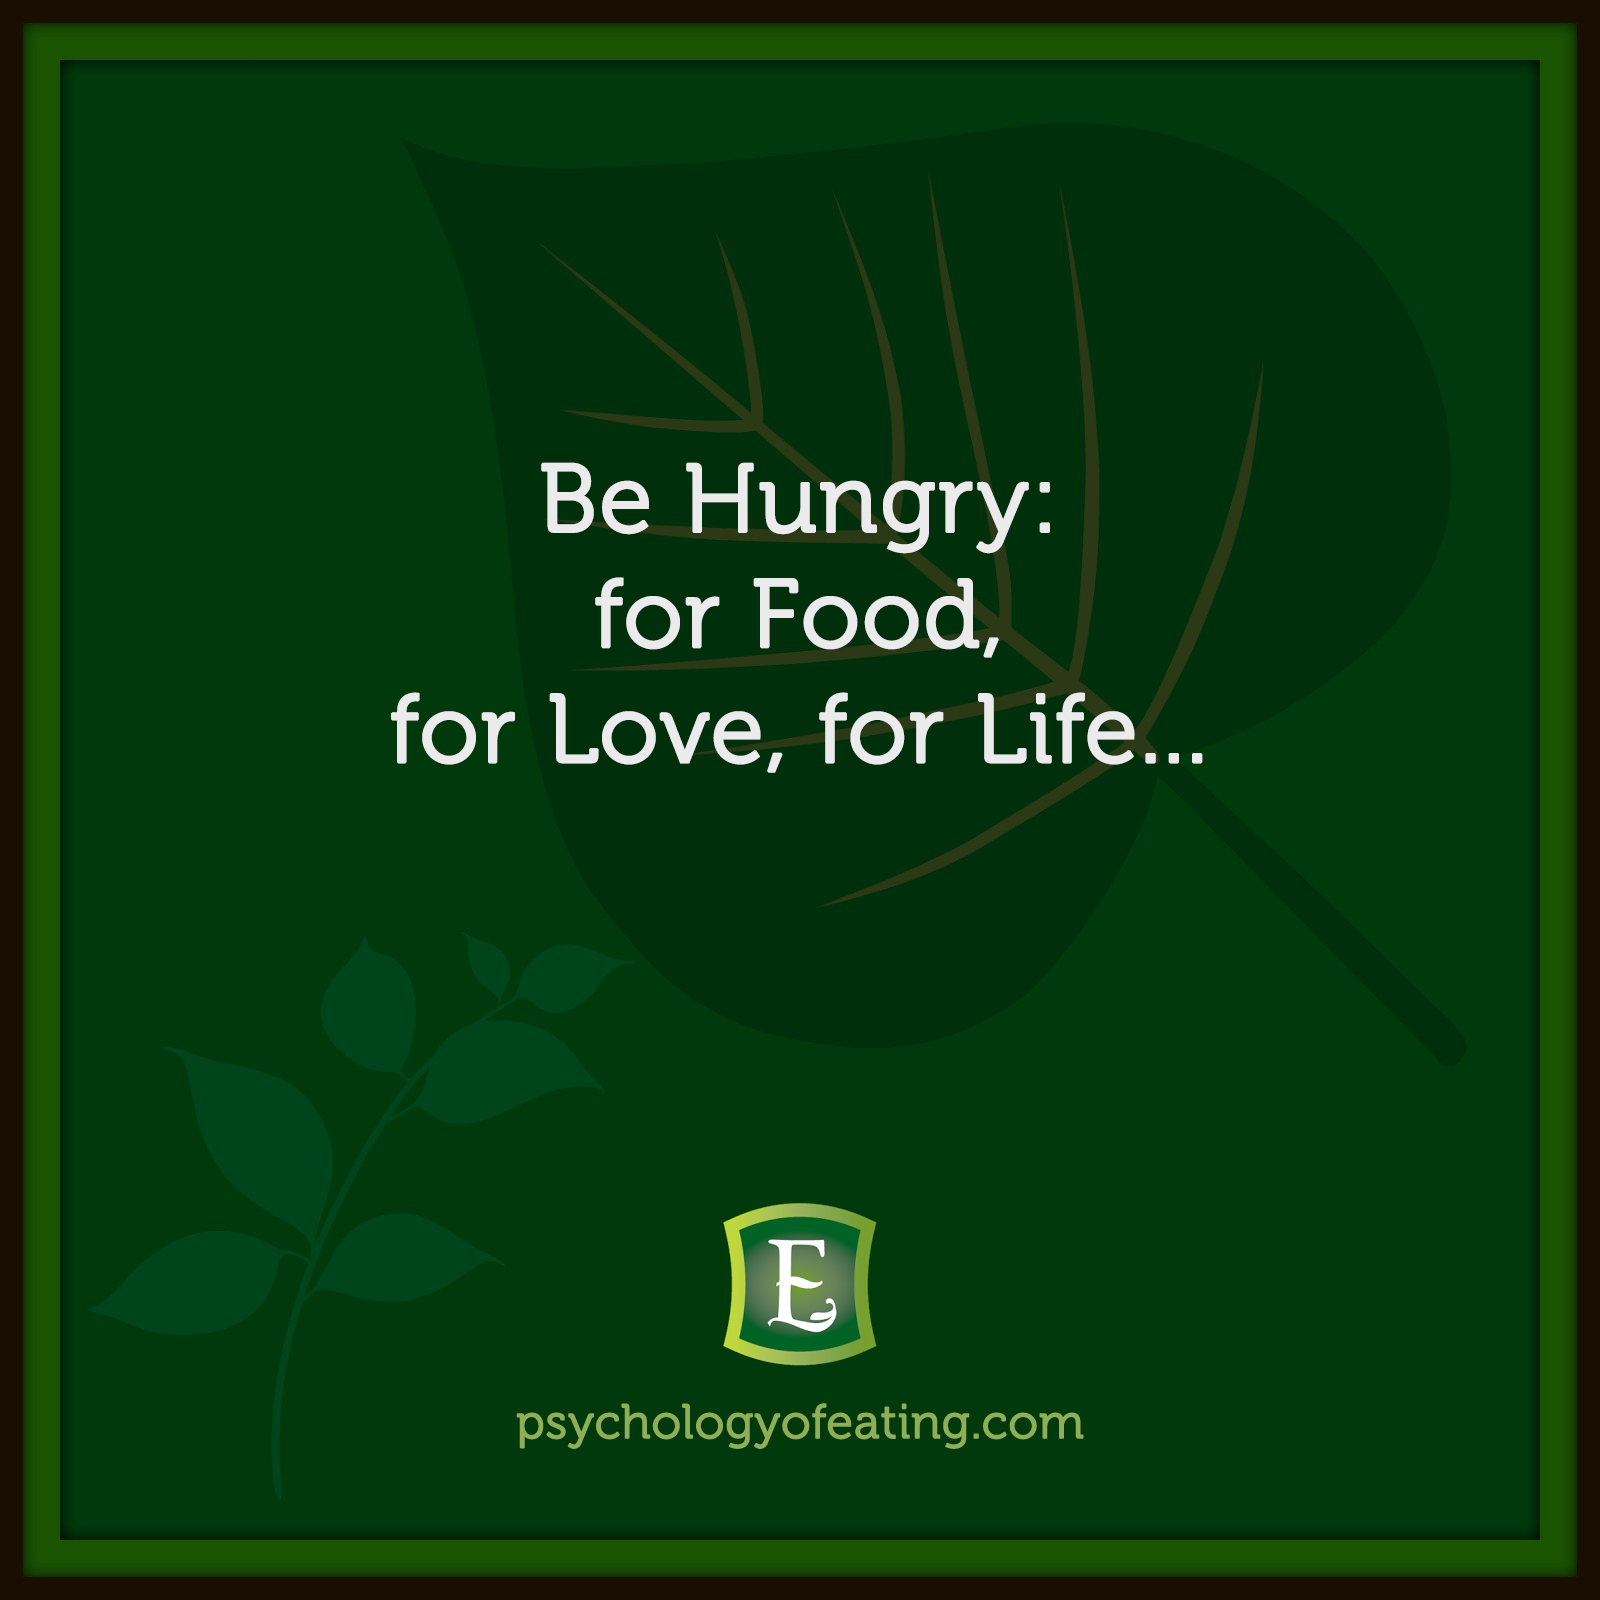 Be Hungry: for Food, for Love, for Life… #health #nutrition #eatingpsychology #IPE